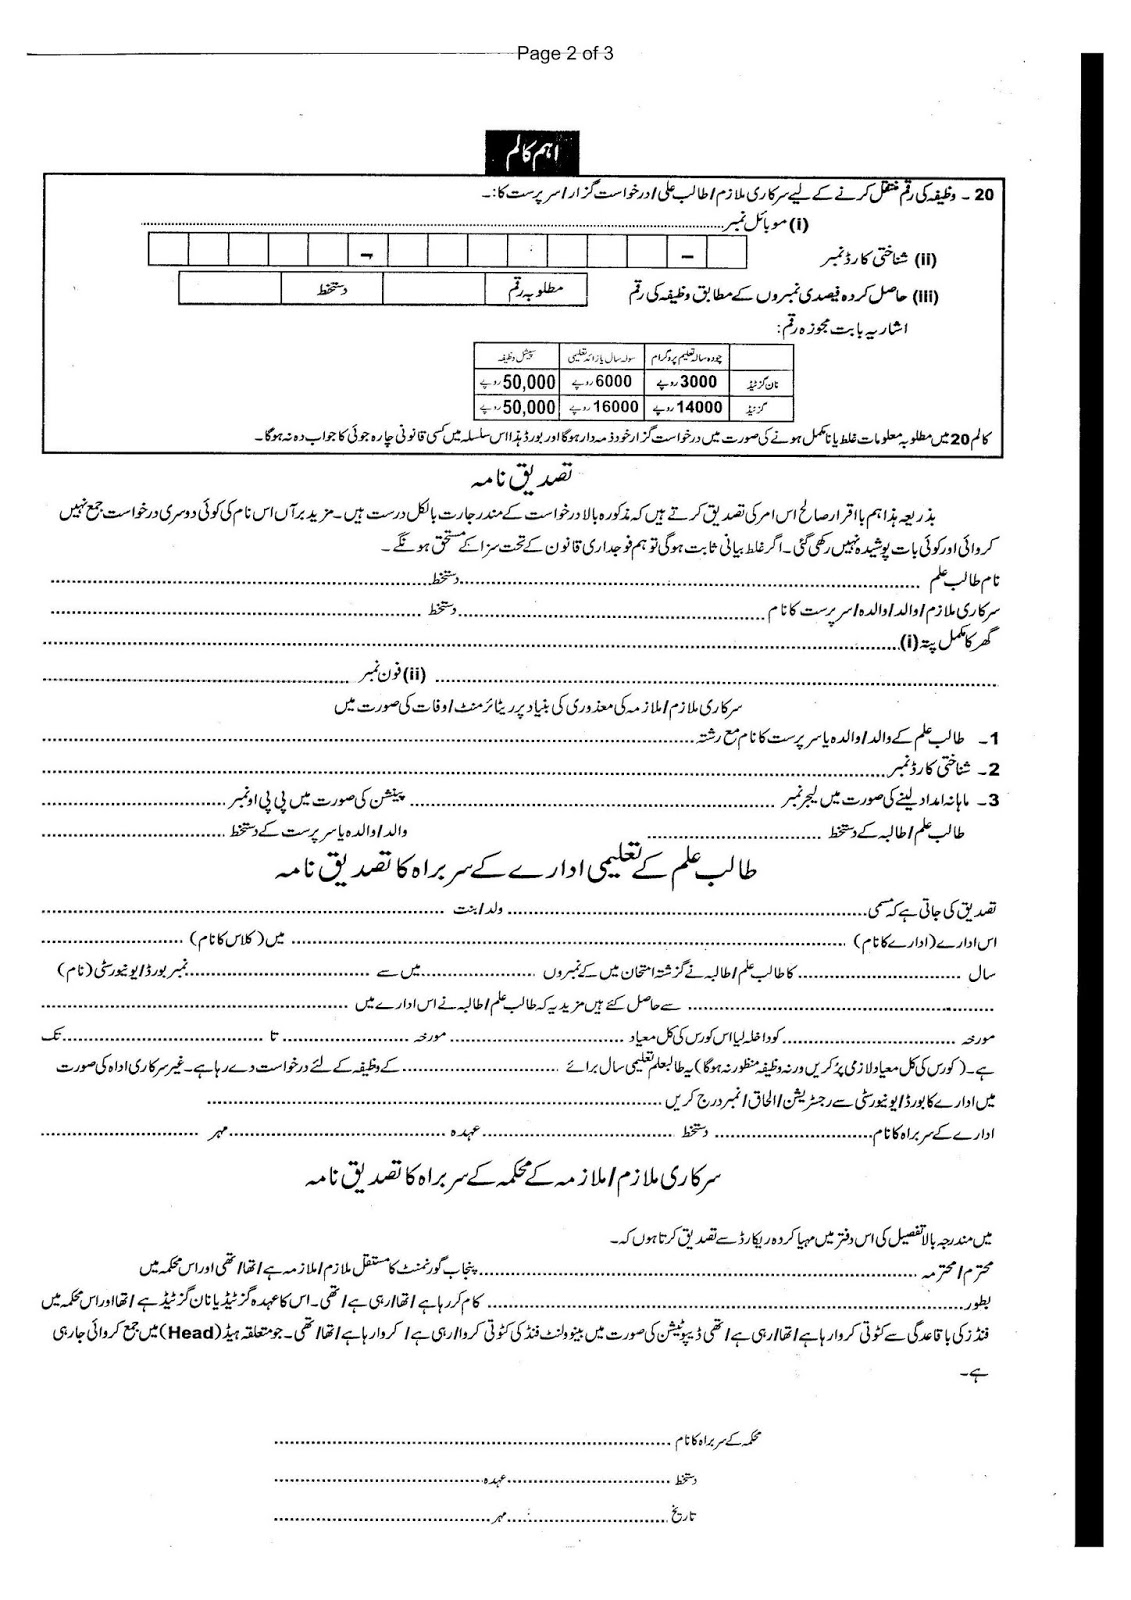 Download High Resolution Print Quality Benevolent Scholarship Forms for year 2018-2019 for children of Punjab Government Servants Page 2